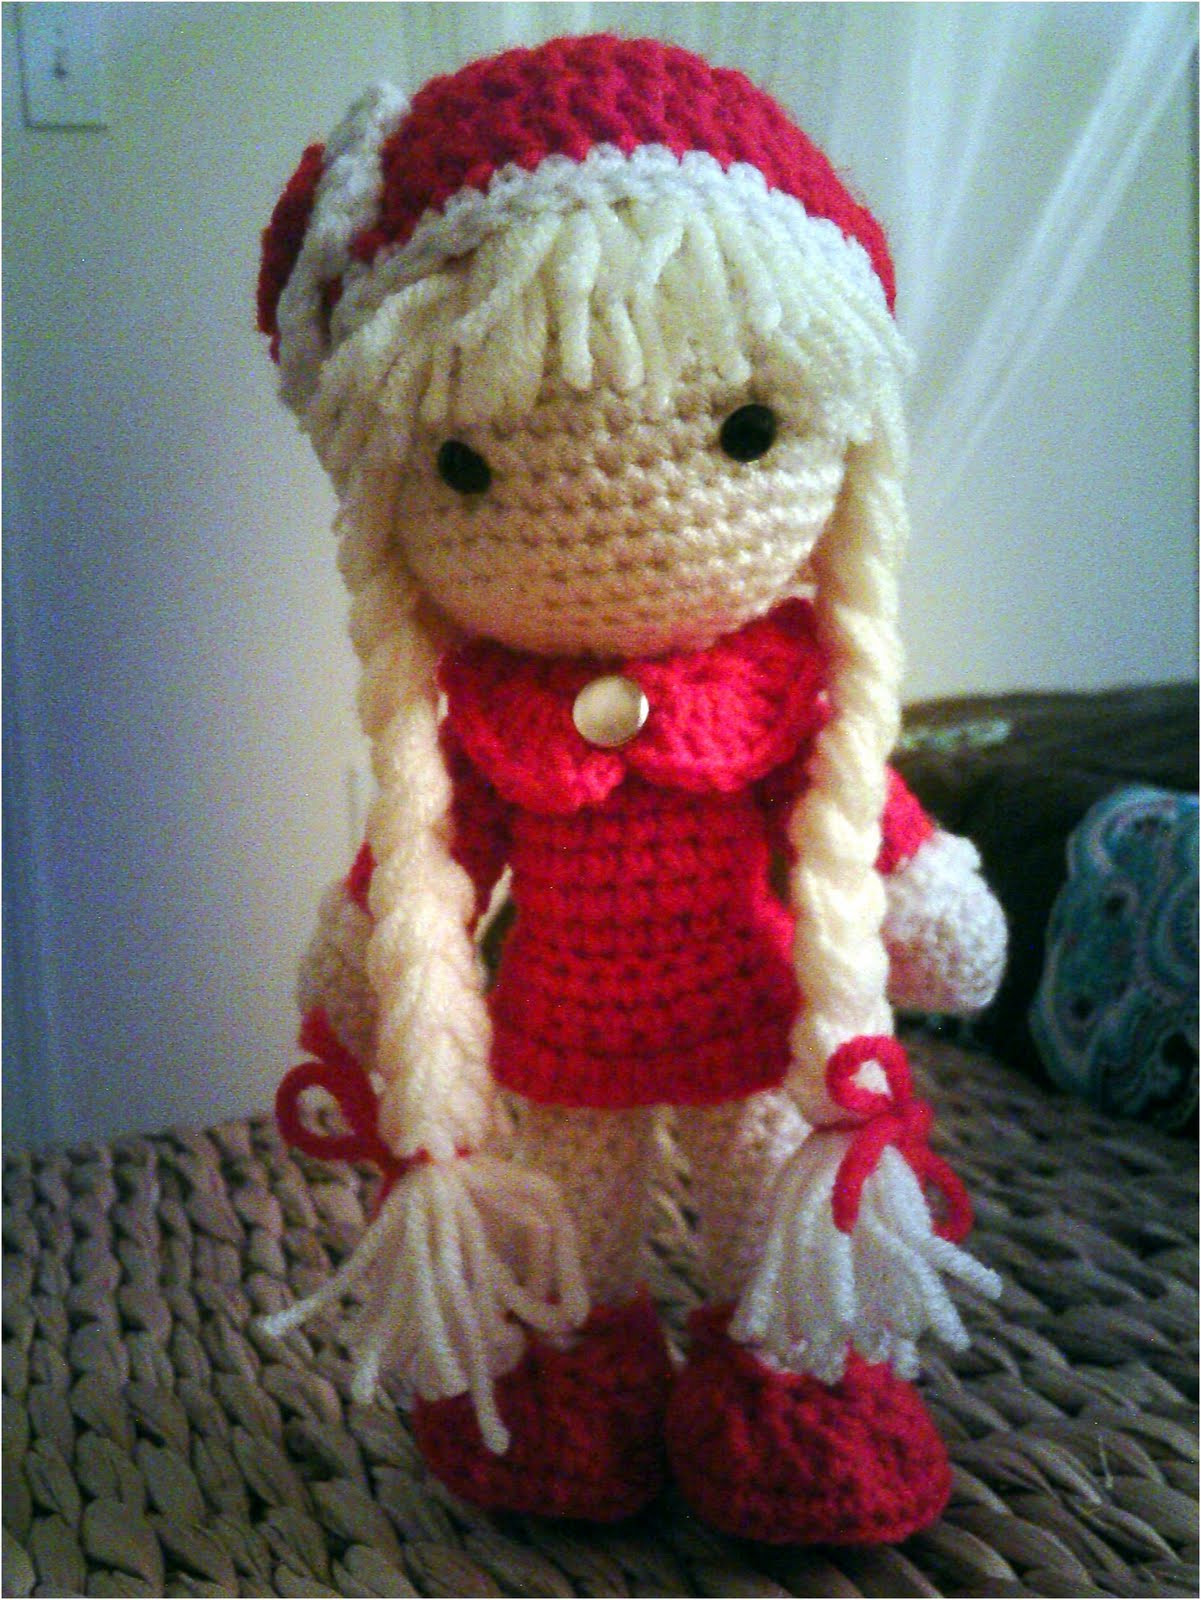 Crochet Doll Patterns Awesome April 2010 Of Adorable 42 Ideas Crochet Doll Patterns